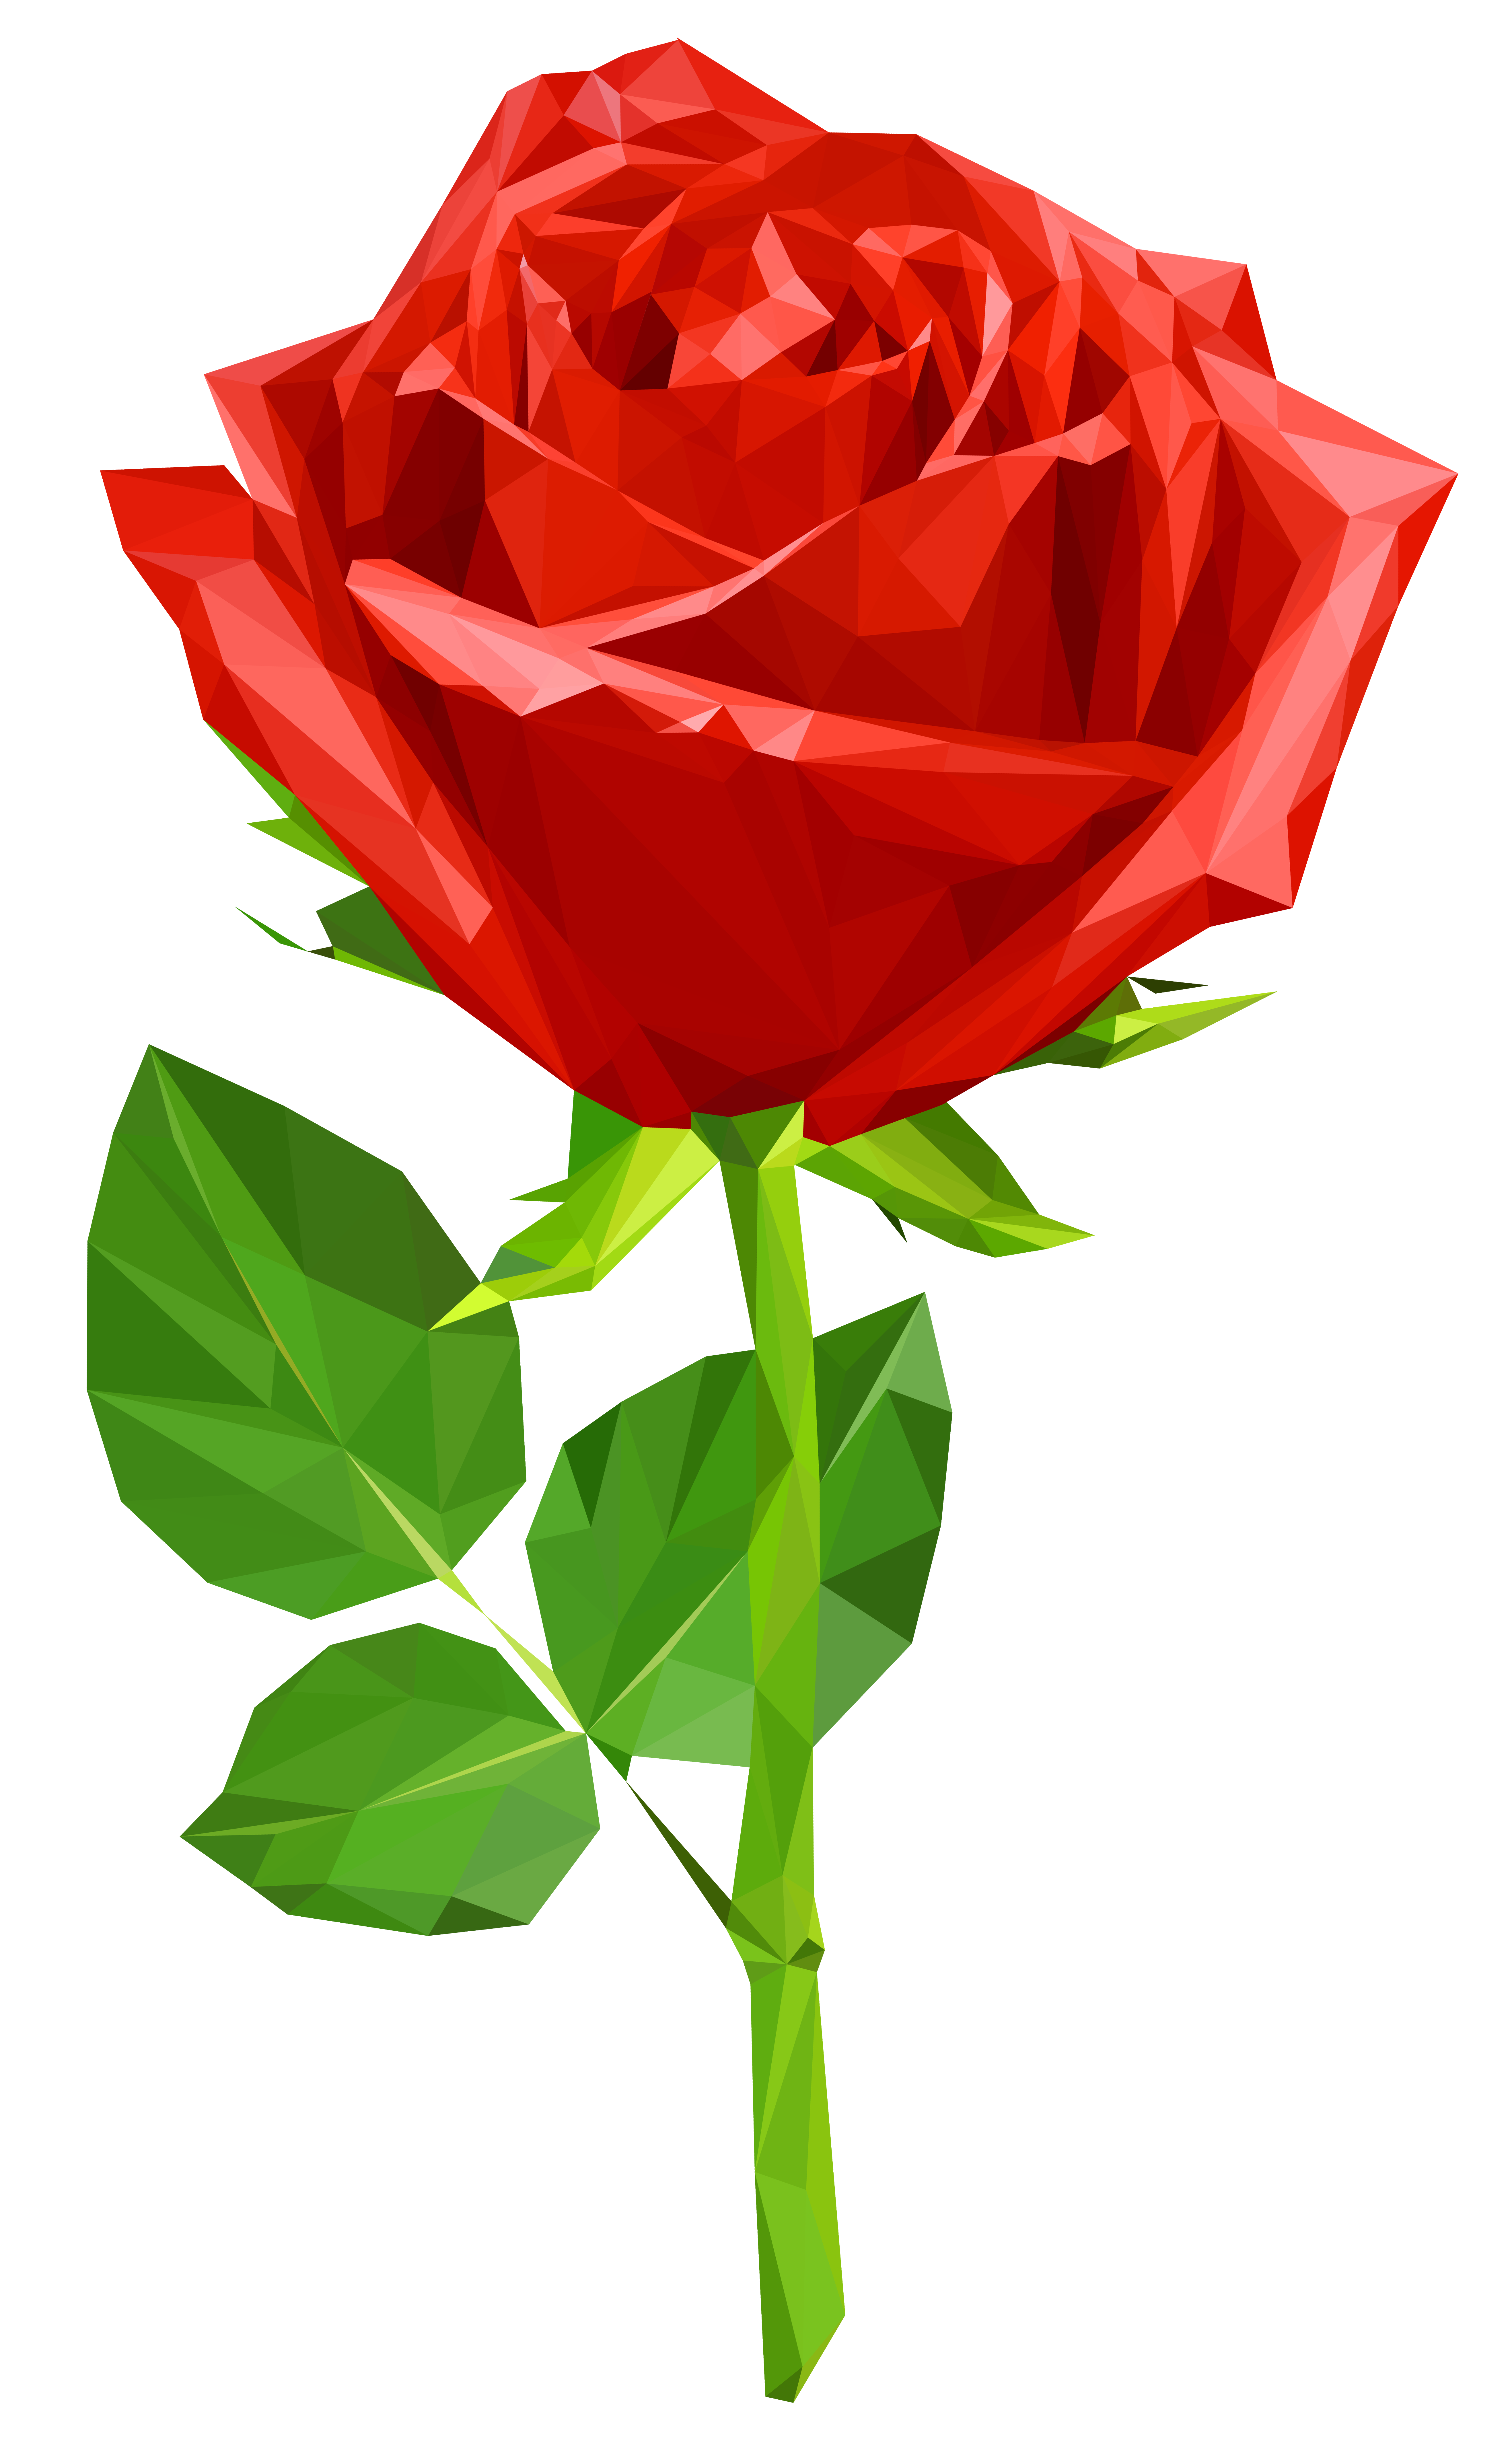 Crystal red transparent png. Clipart rose natural